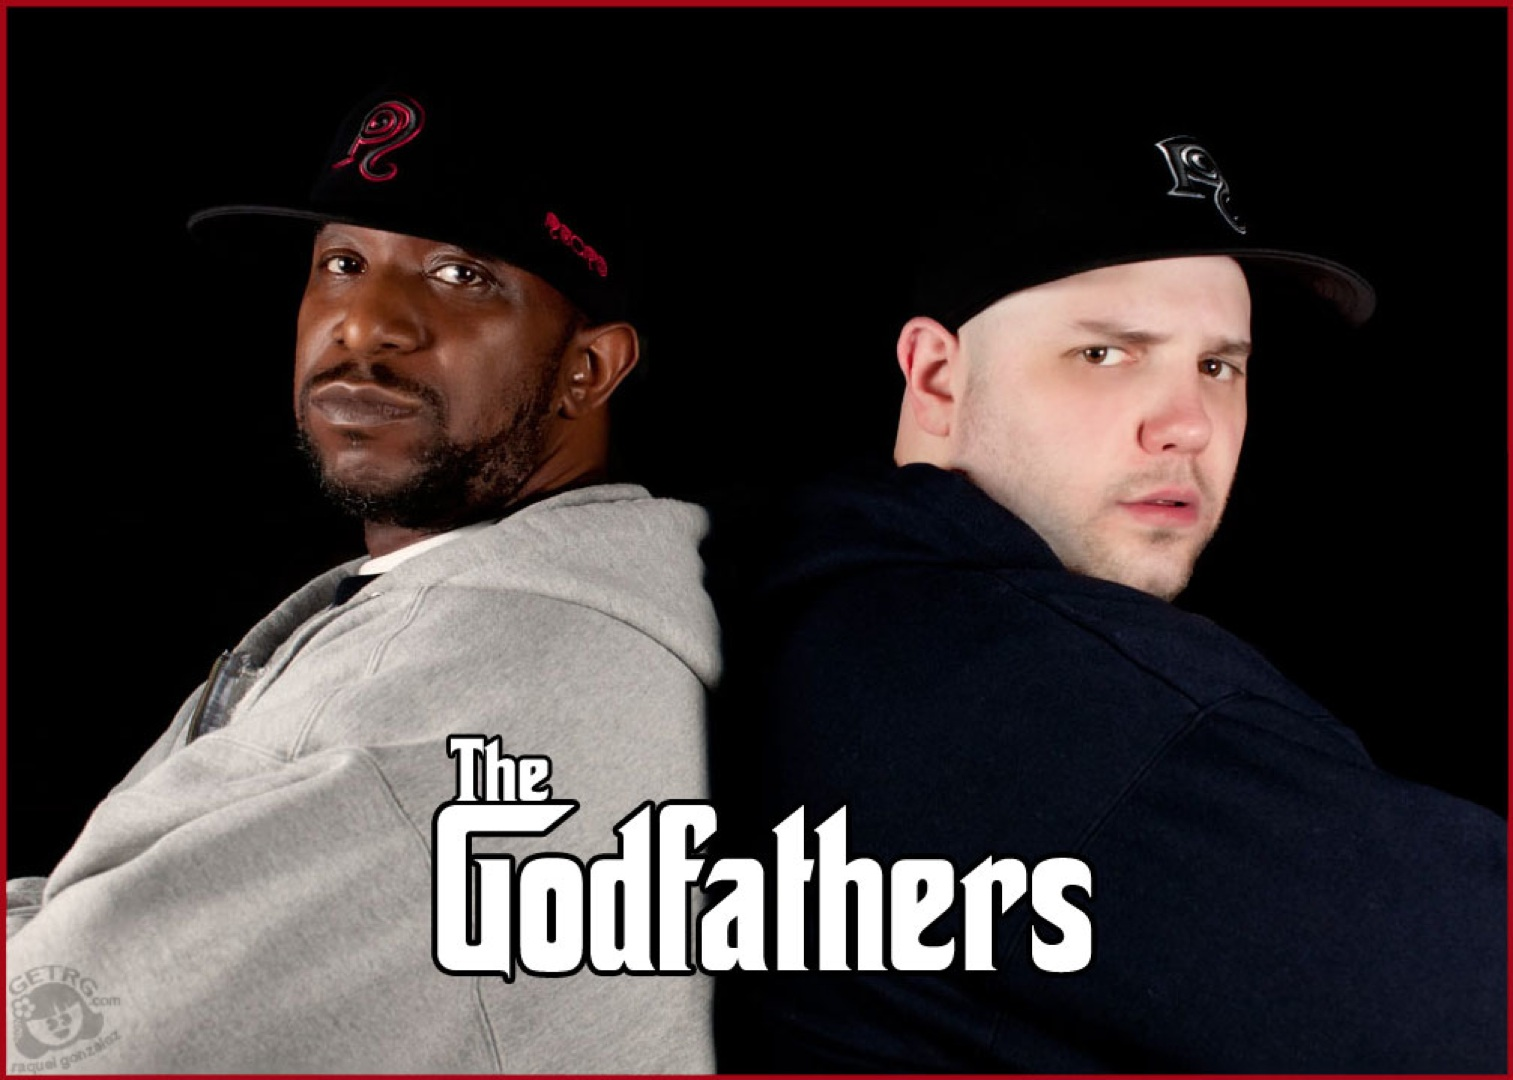 The Godfathers (rap duo) - Wikipedia